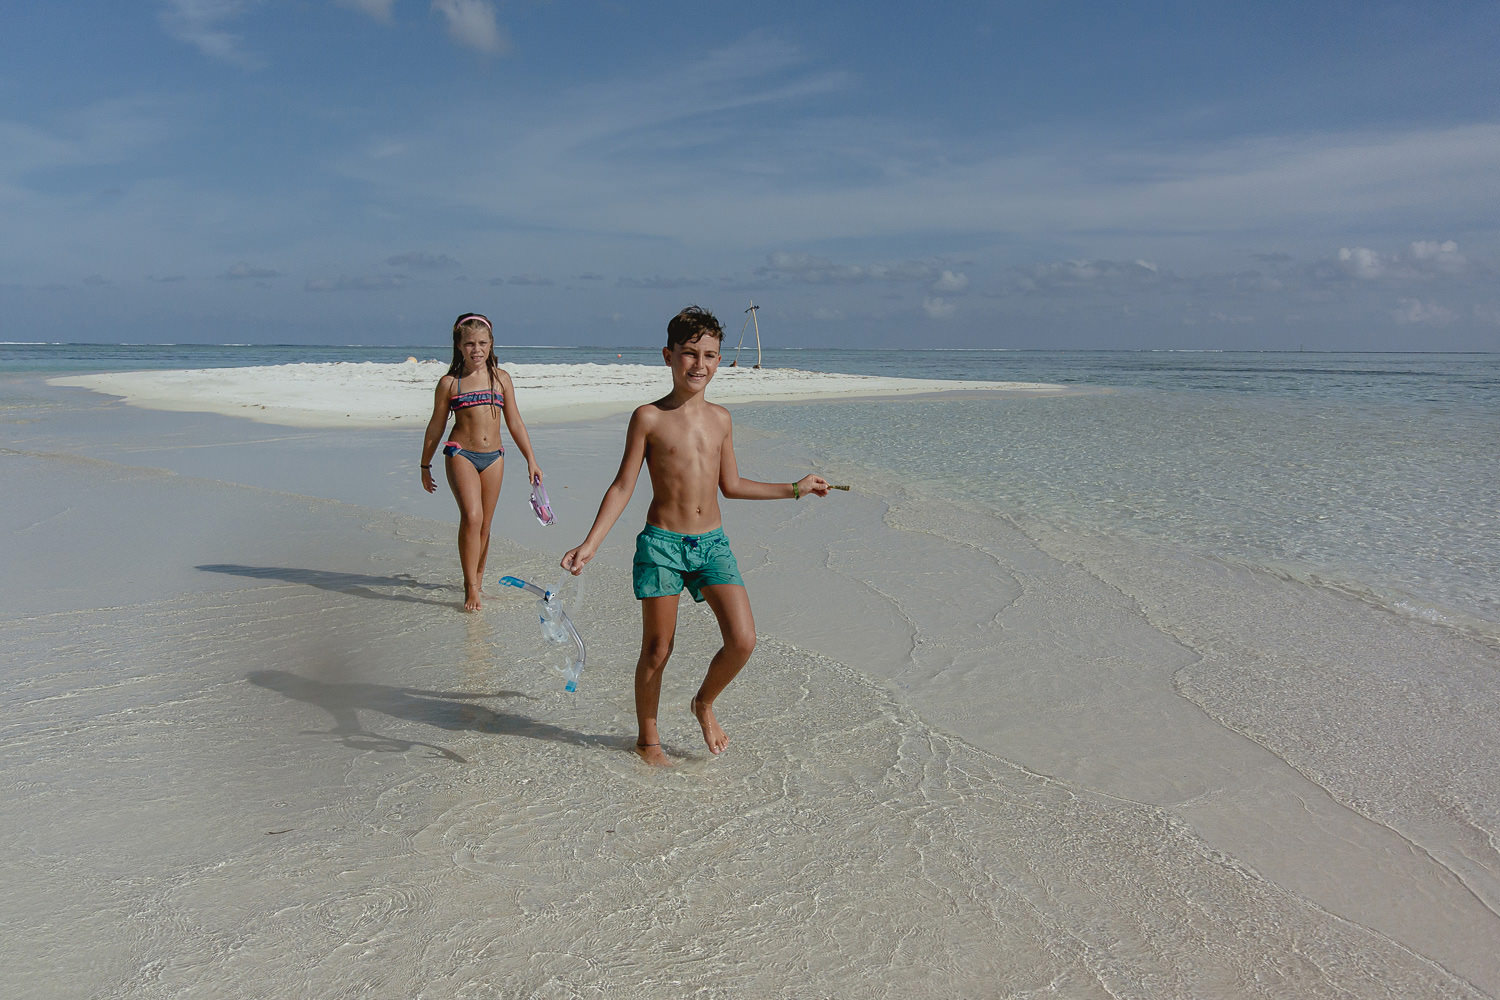 wedding photographer in maldives anniversary trip private sandbank affairs vow renewals day